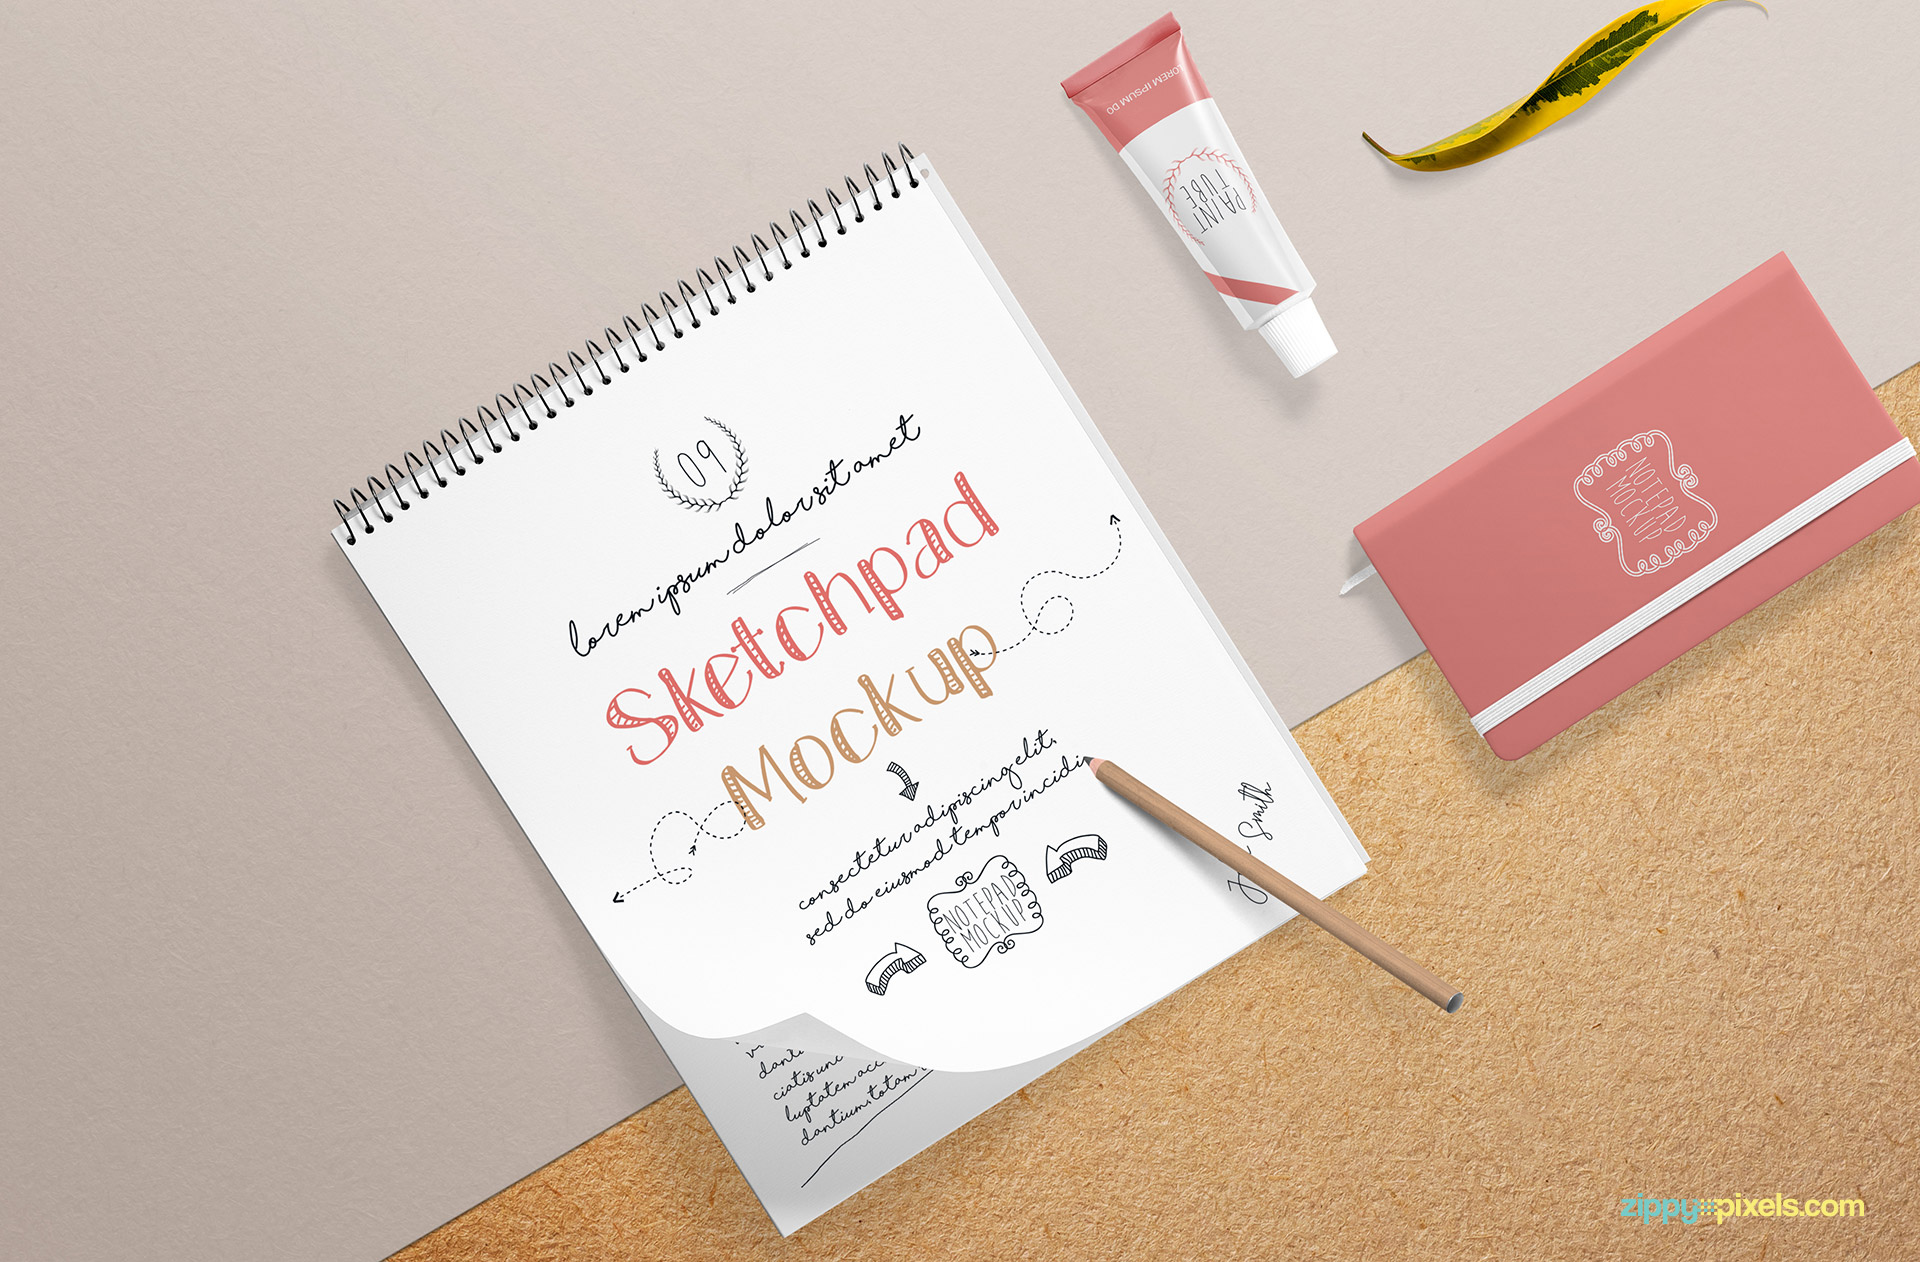 Free realistic sketch book mockup.